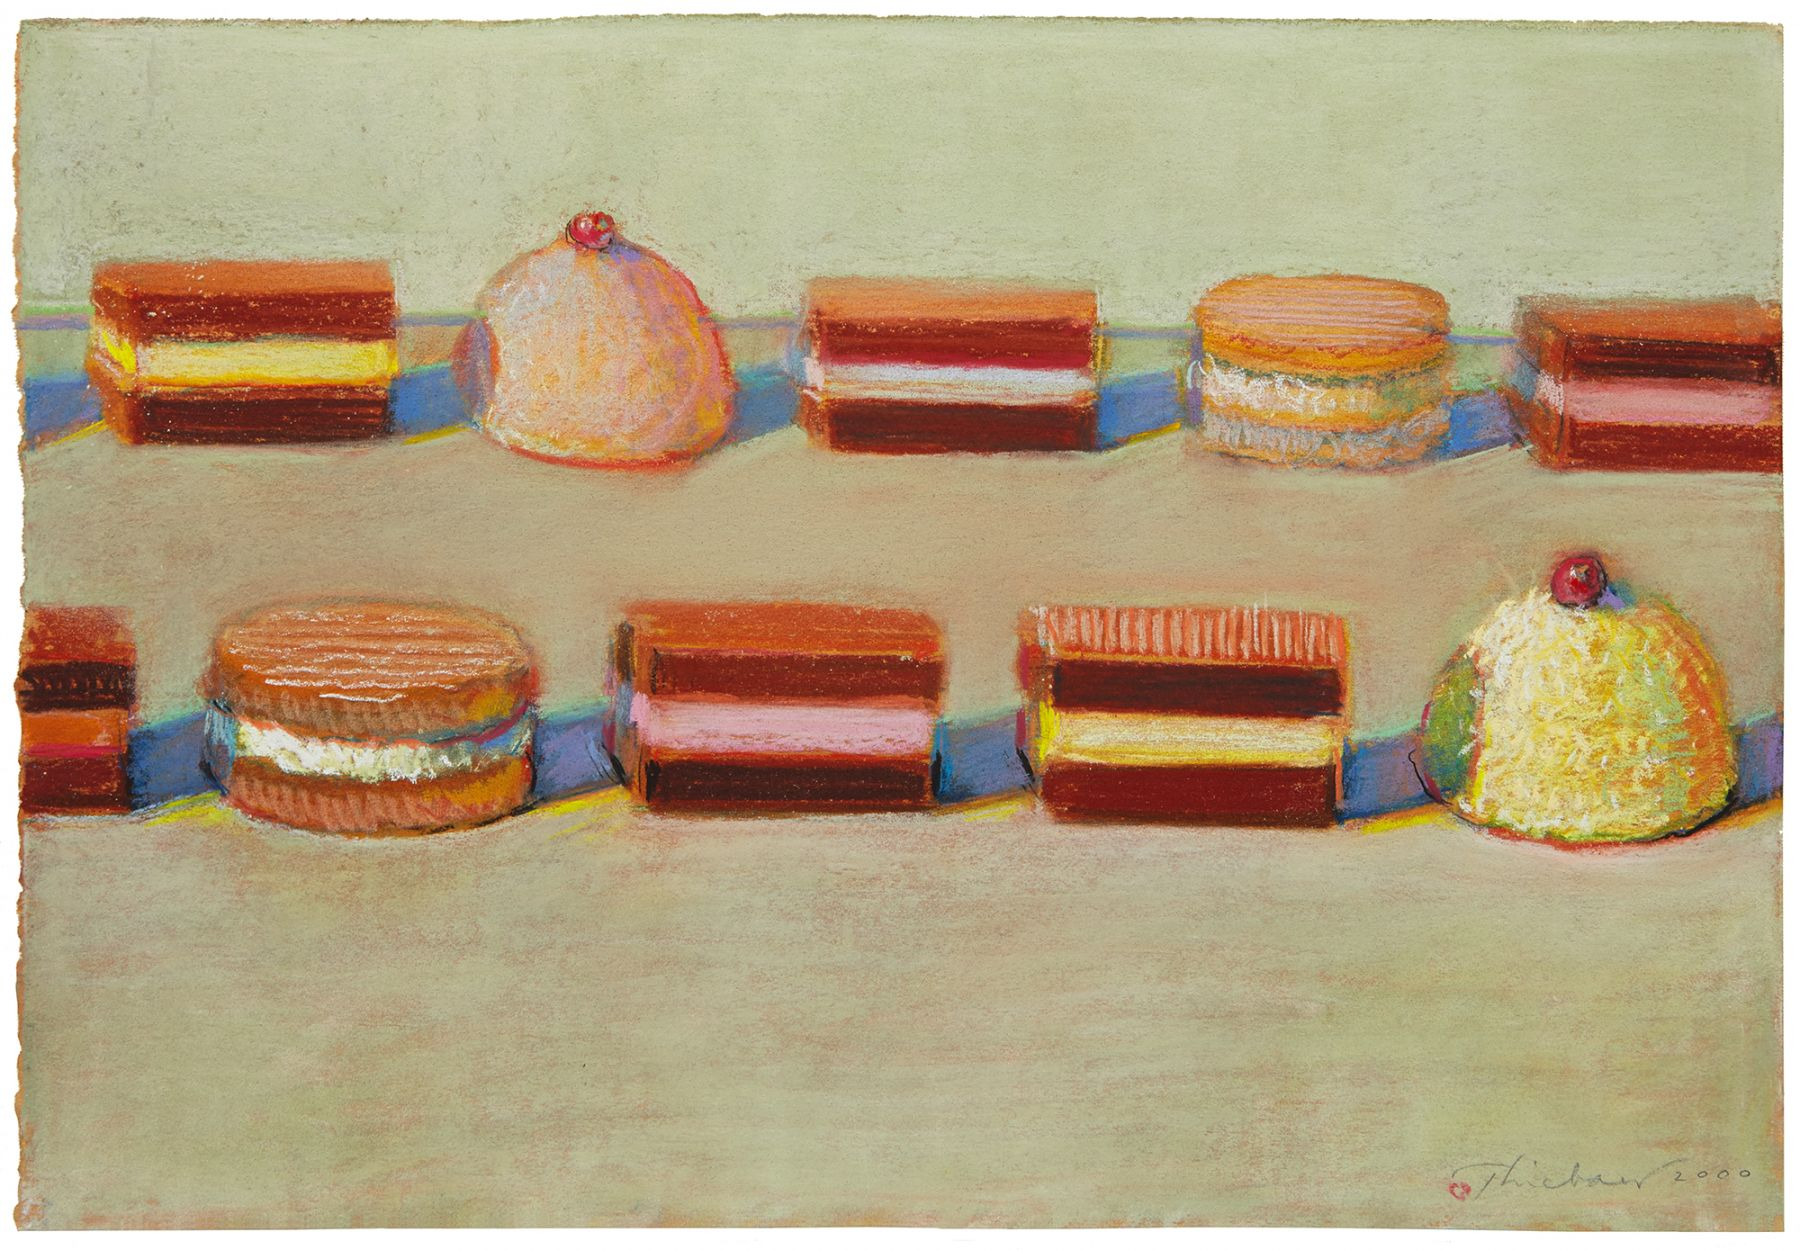 Wayne Thiebaud, Ten Candies, 2000